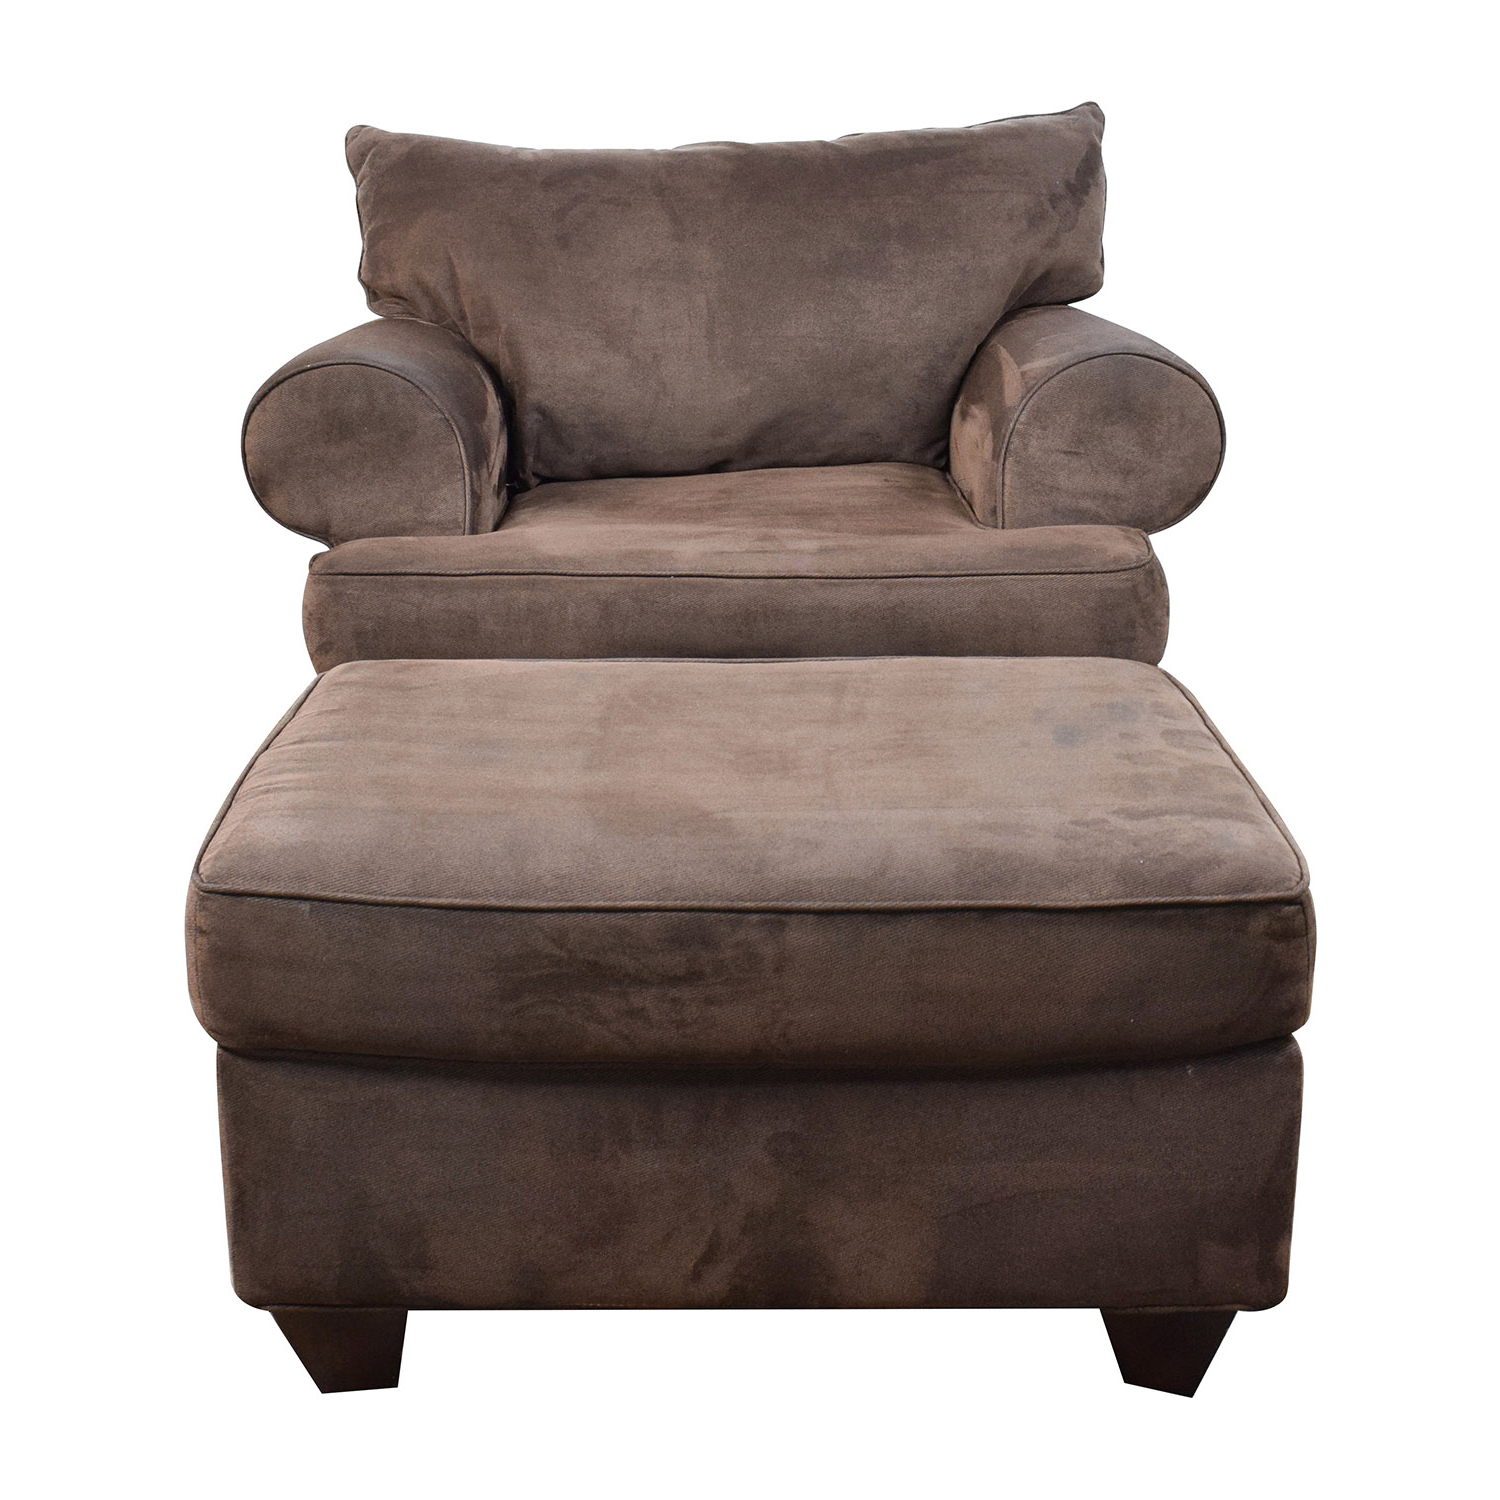 [%67% Off – Dark Brown Sofa Chair With Ottoman / Chairs Inside Famous Sofa Chair With Ottoman|Sofa Chair With Ottoman Intended For Most Current 67% Off – Dark Brown Sofa Chair With Ottoman / Chairs|Best And Newest Sofa Chair With Ottoman Inside 67% Off – Dark Brown Sofa Chair With Ottoman / Chairs|Most Popular 67% Off – Dark Brown Sofa Chair With Ottoman / Chairs Pertaining To Sofa Chair With Ottoman%] (View 1 of 20)